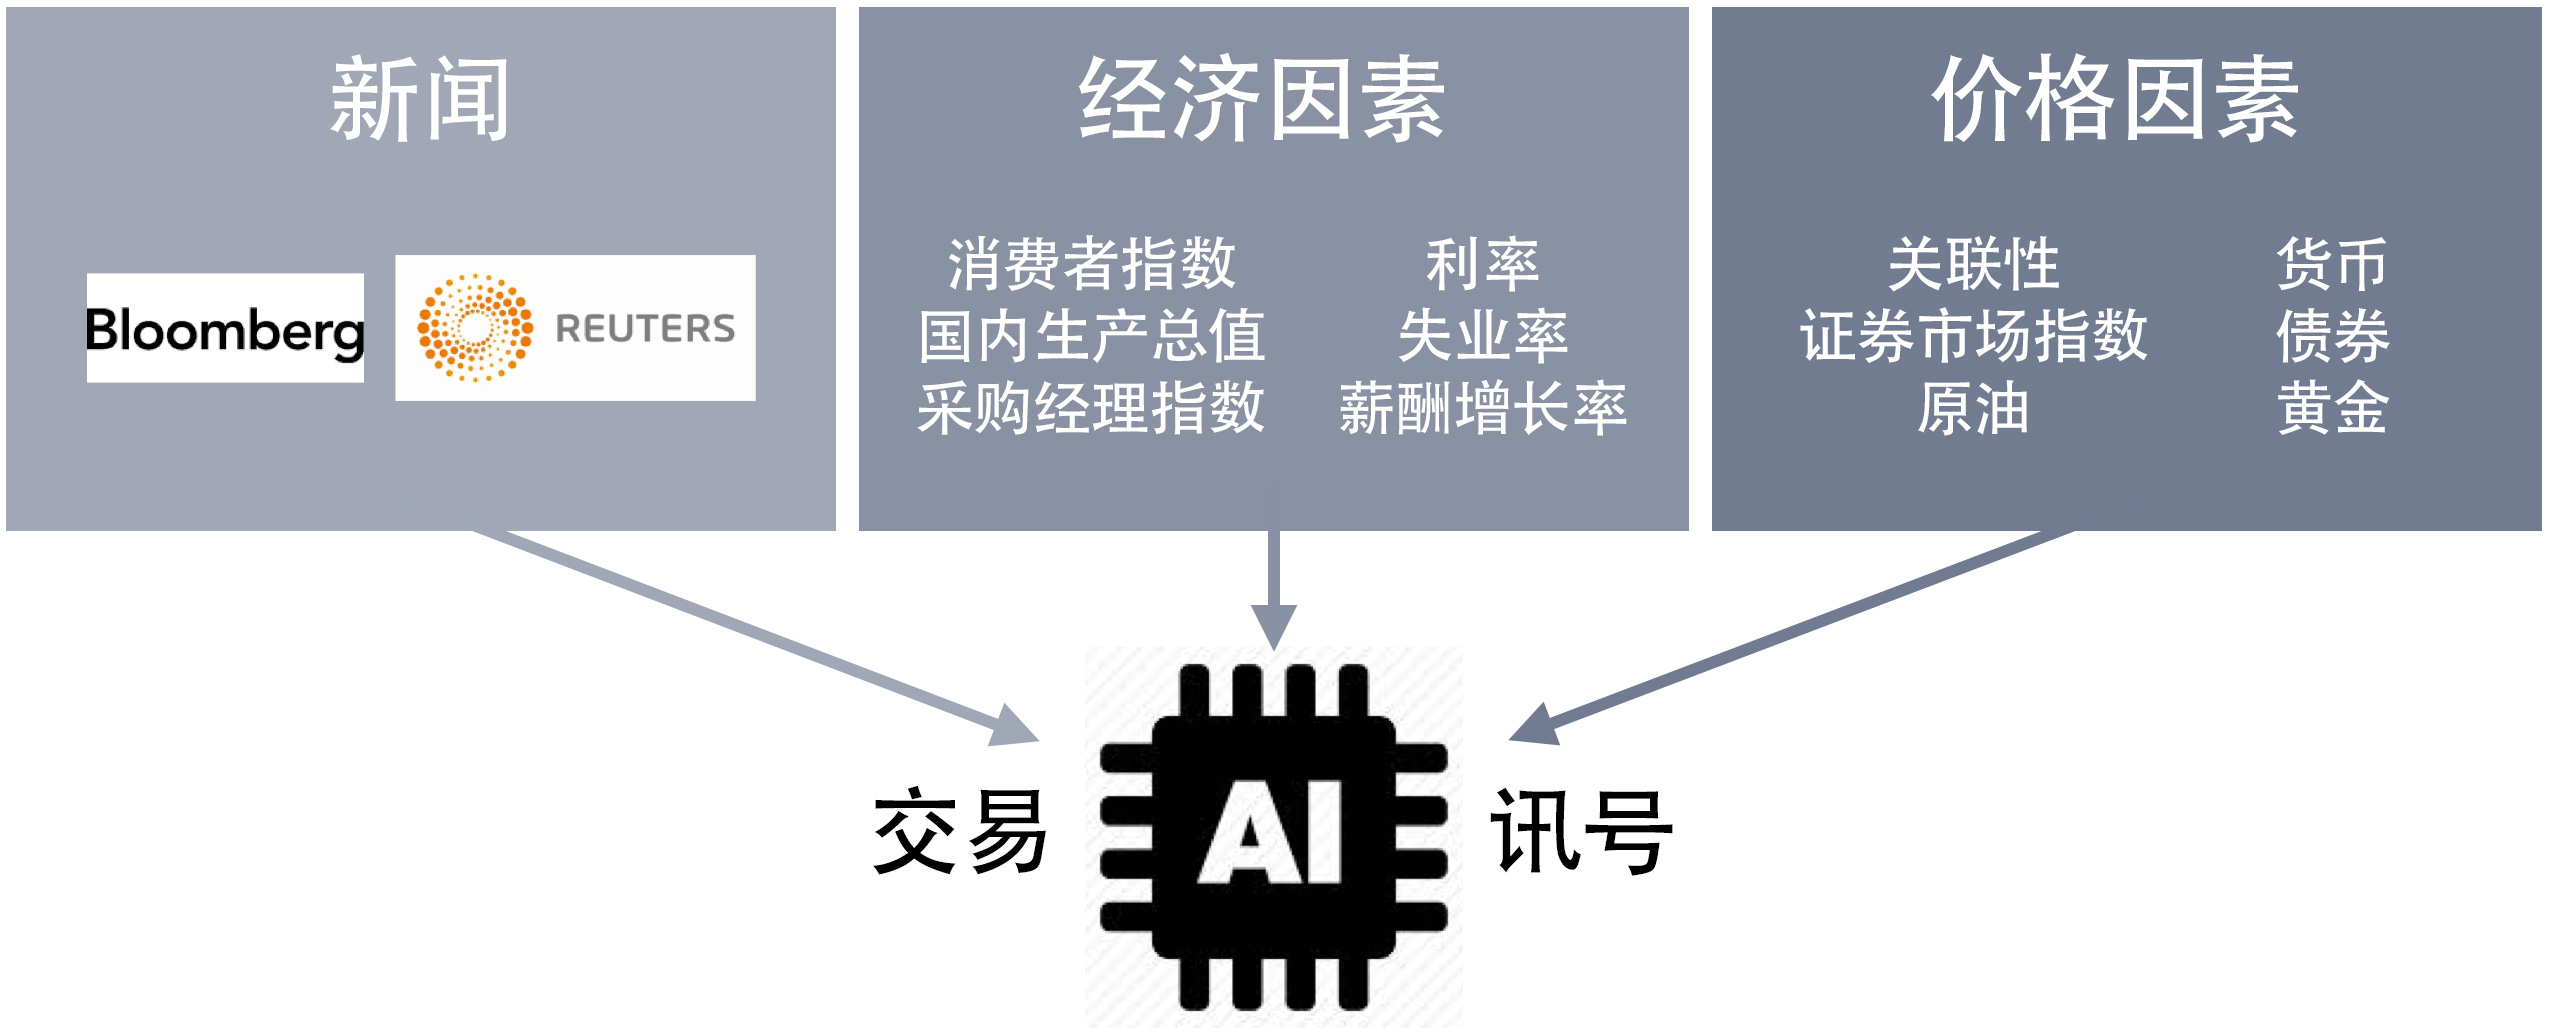 cp-global-artificial-intelligence-trading-signal-chinese